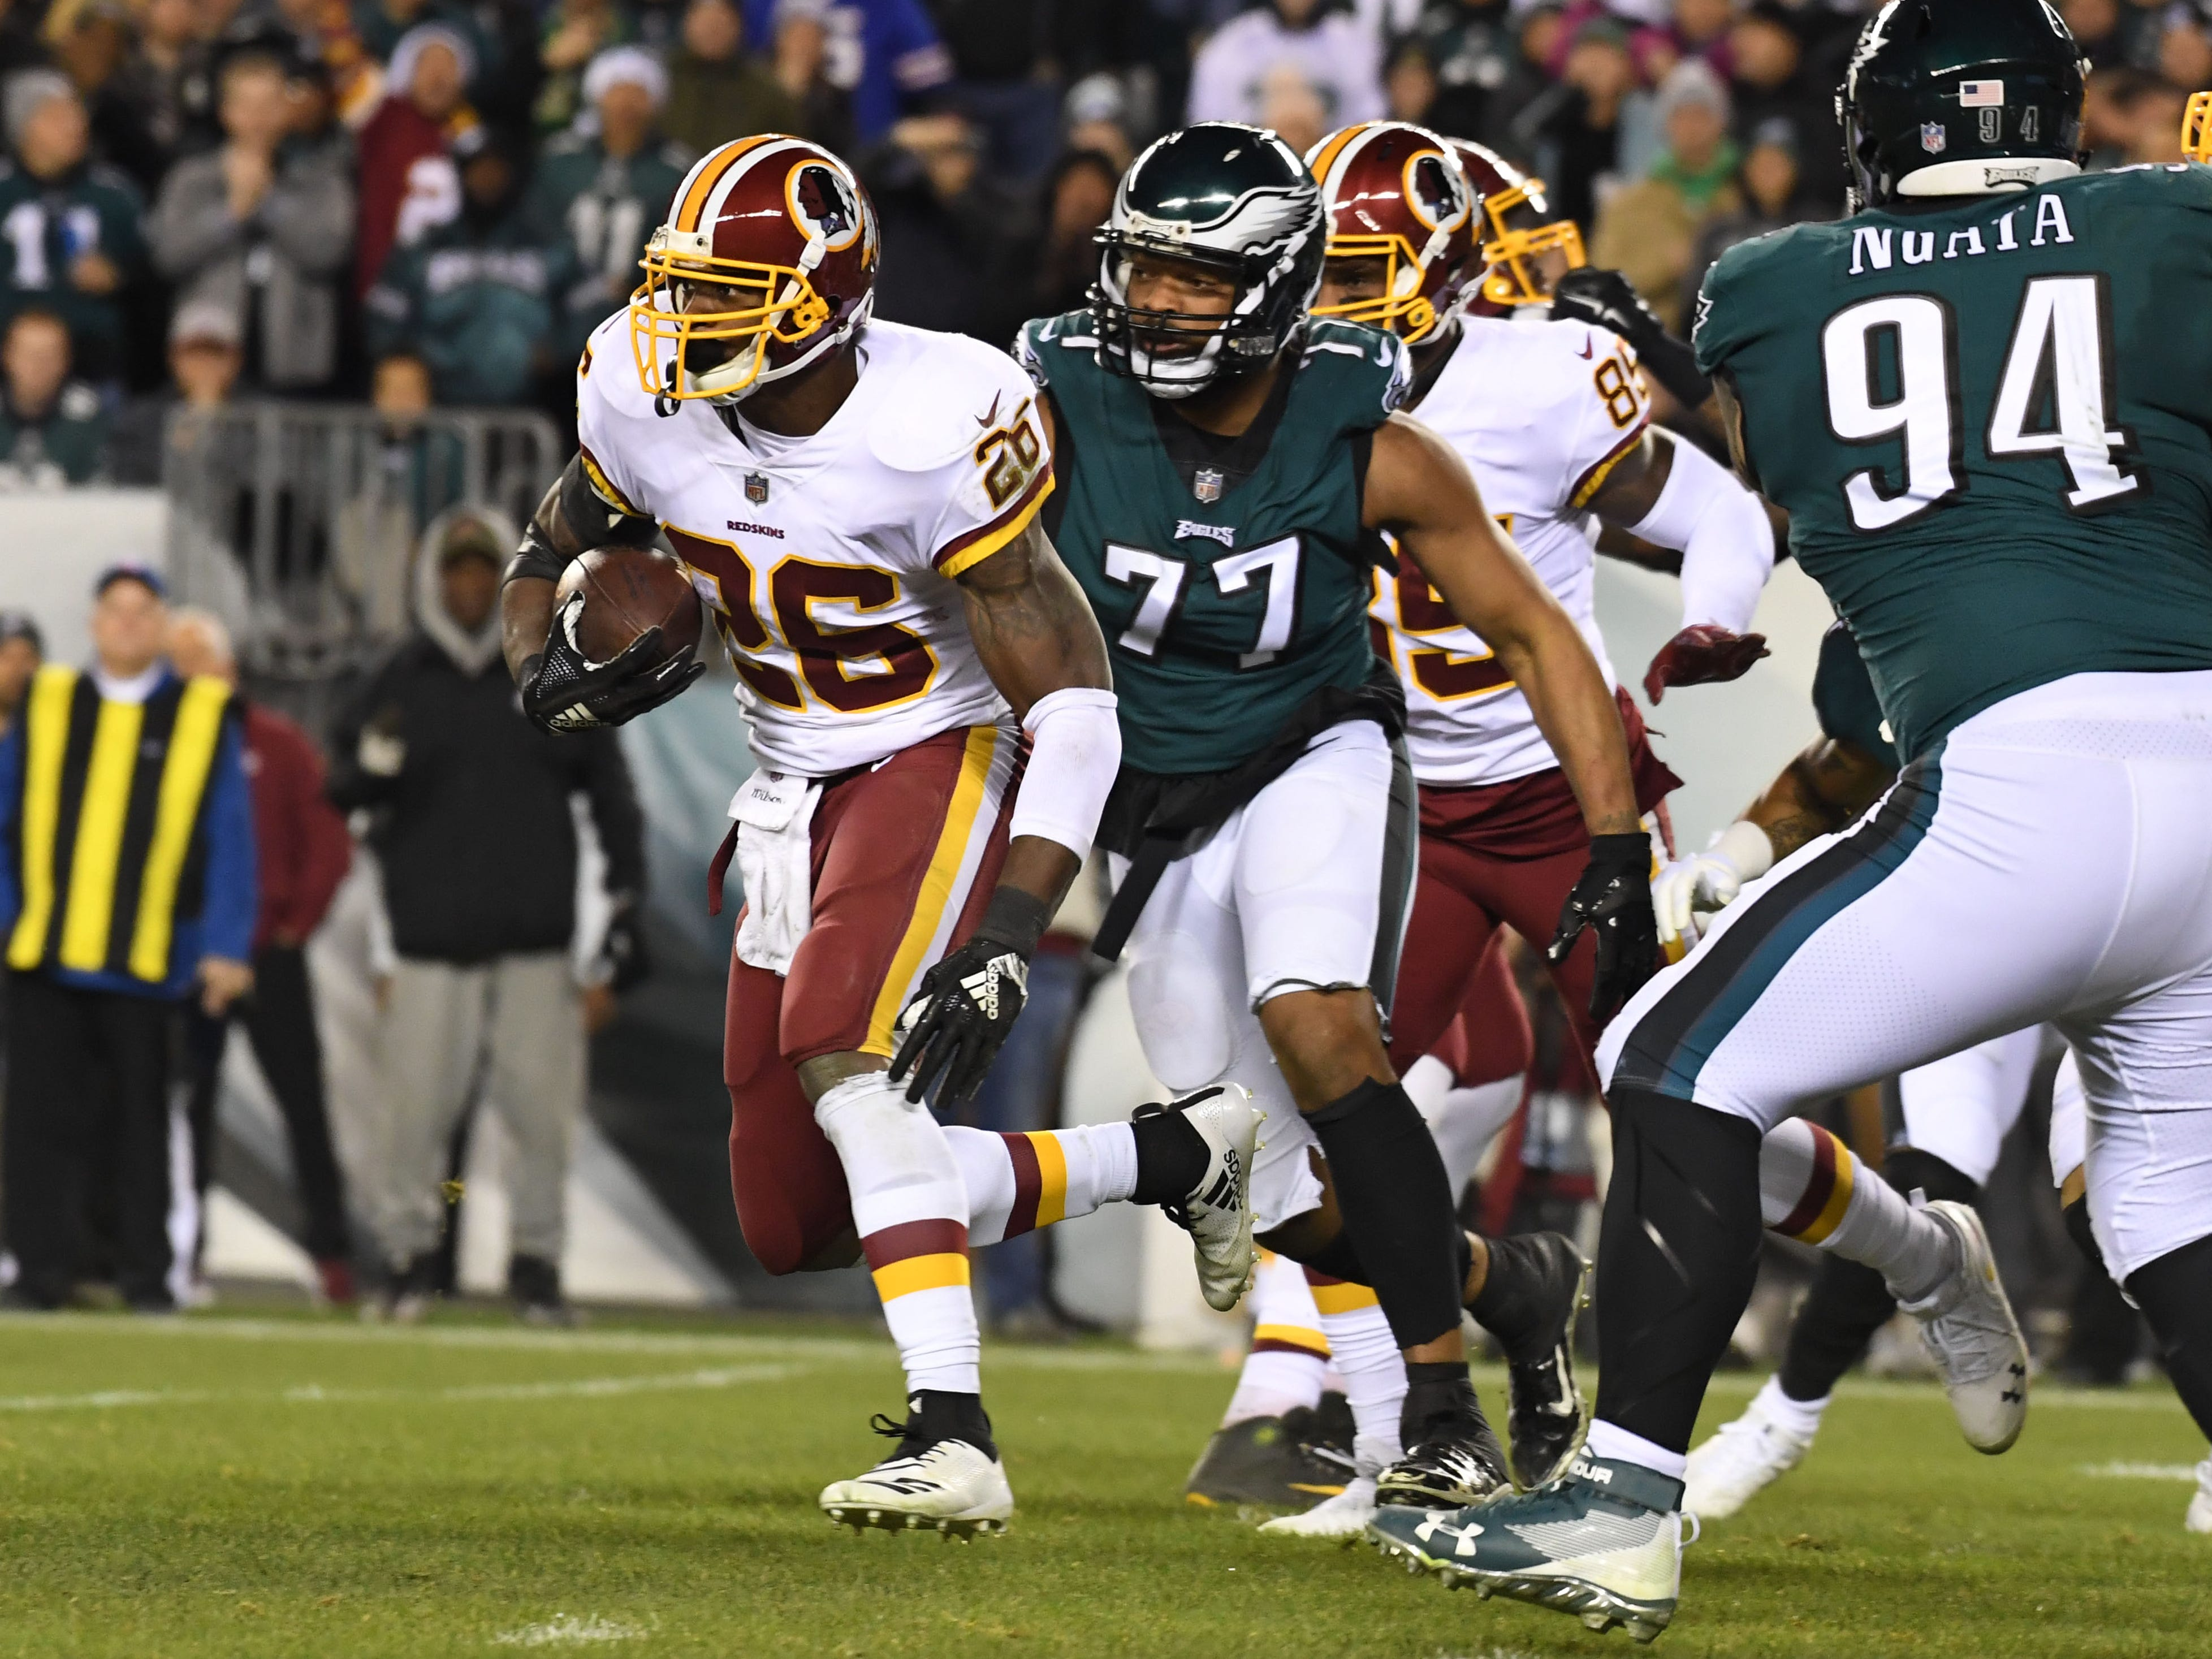 Washington Redskins running back Adrian Peterson carries the ball en route to scoring a touchdown against the Philadelphia Eagles at Lincoln Financial Field.